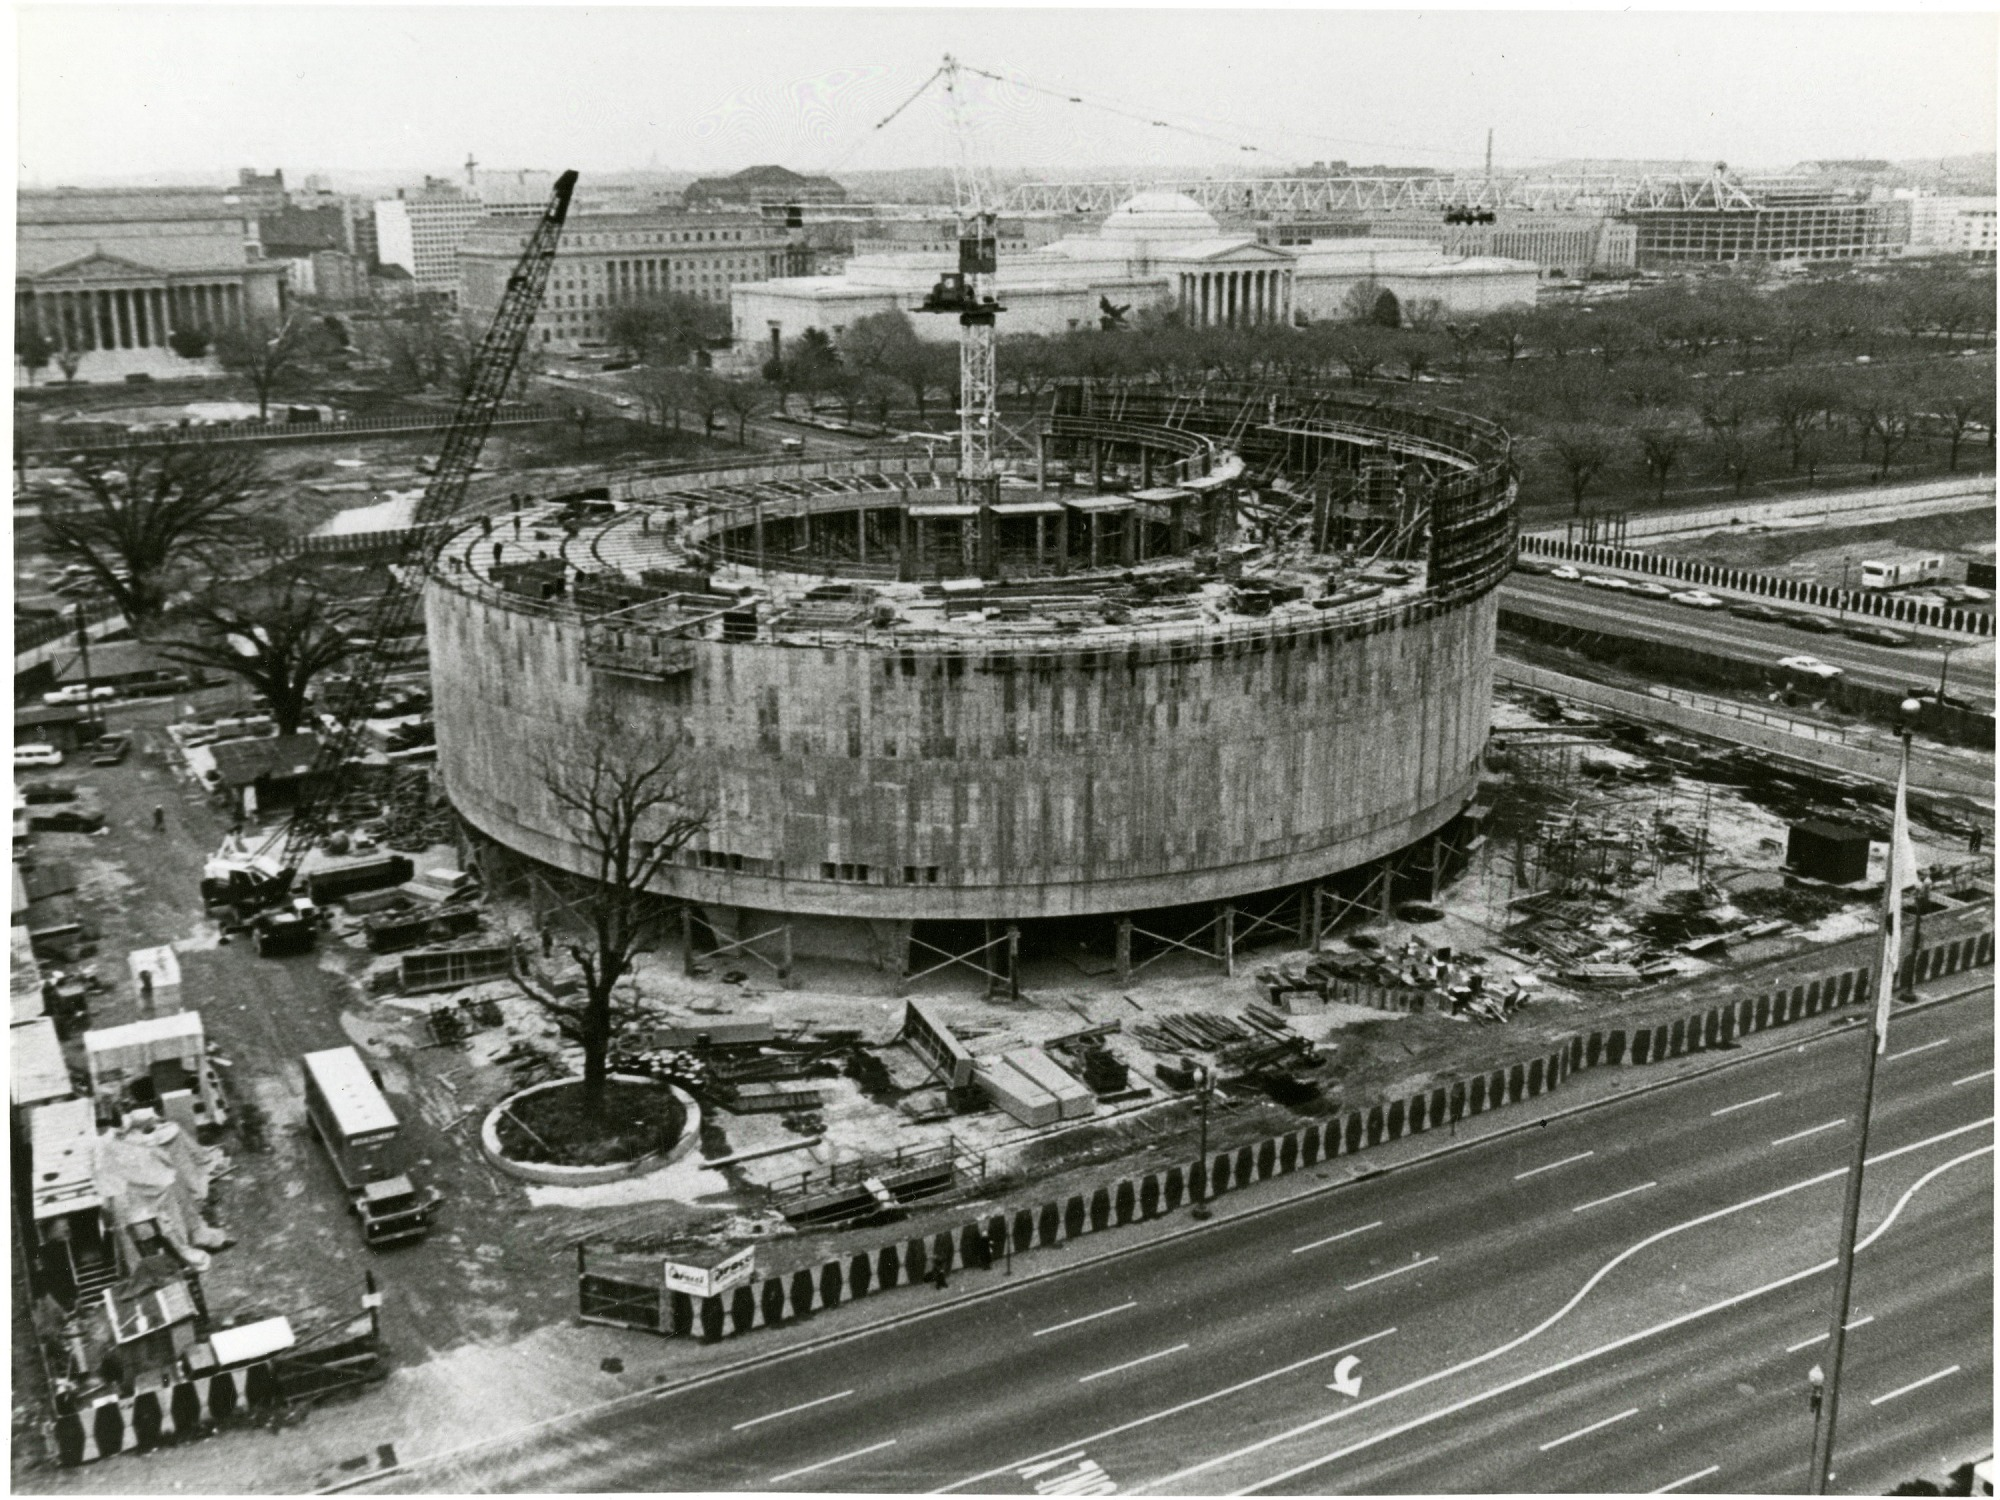 Construction of the Hirshhorn Museum